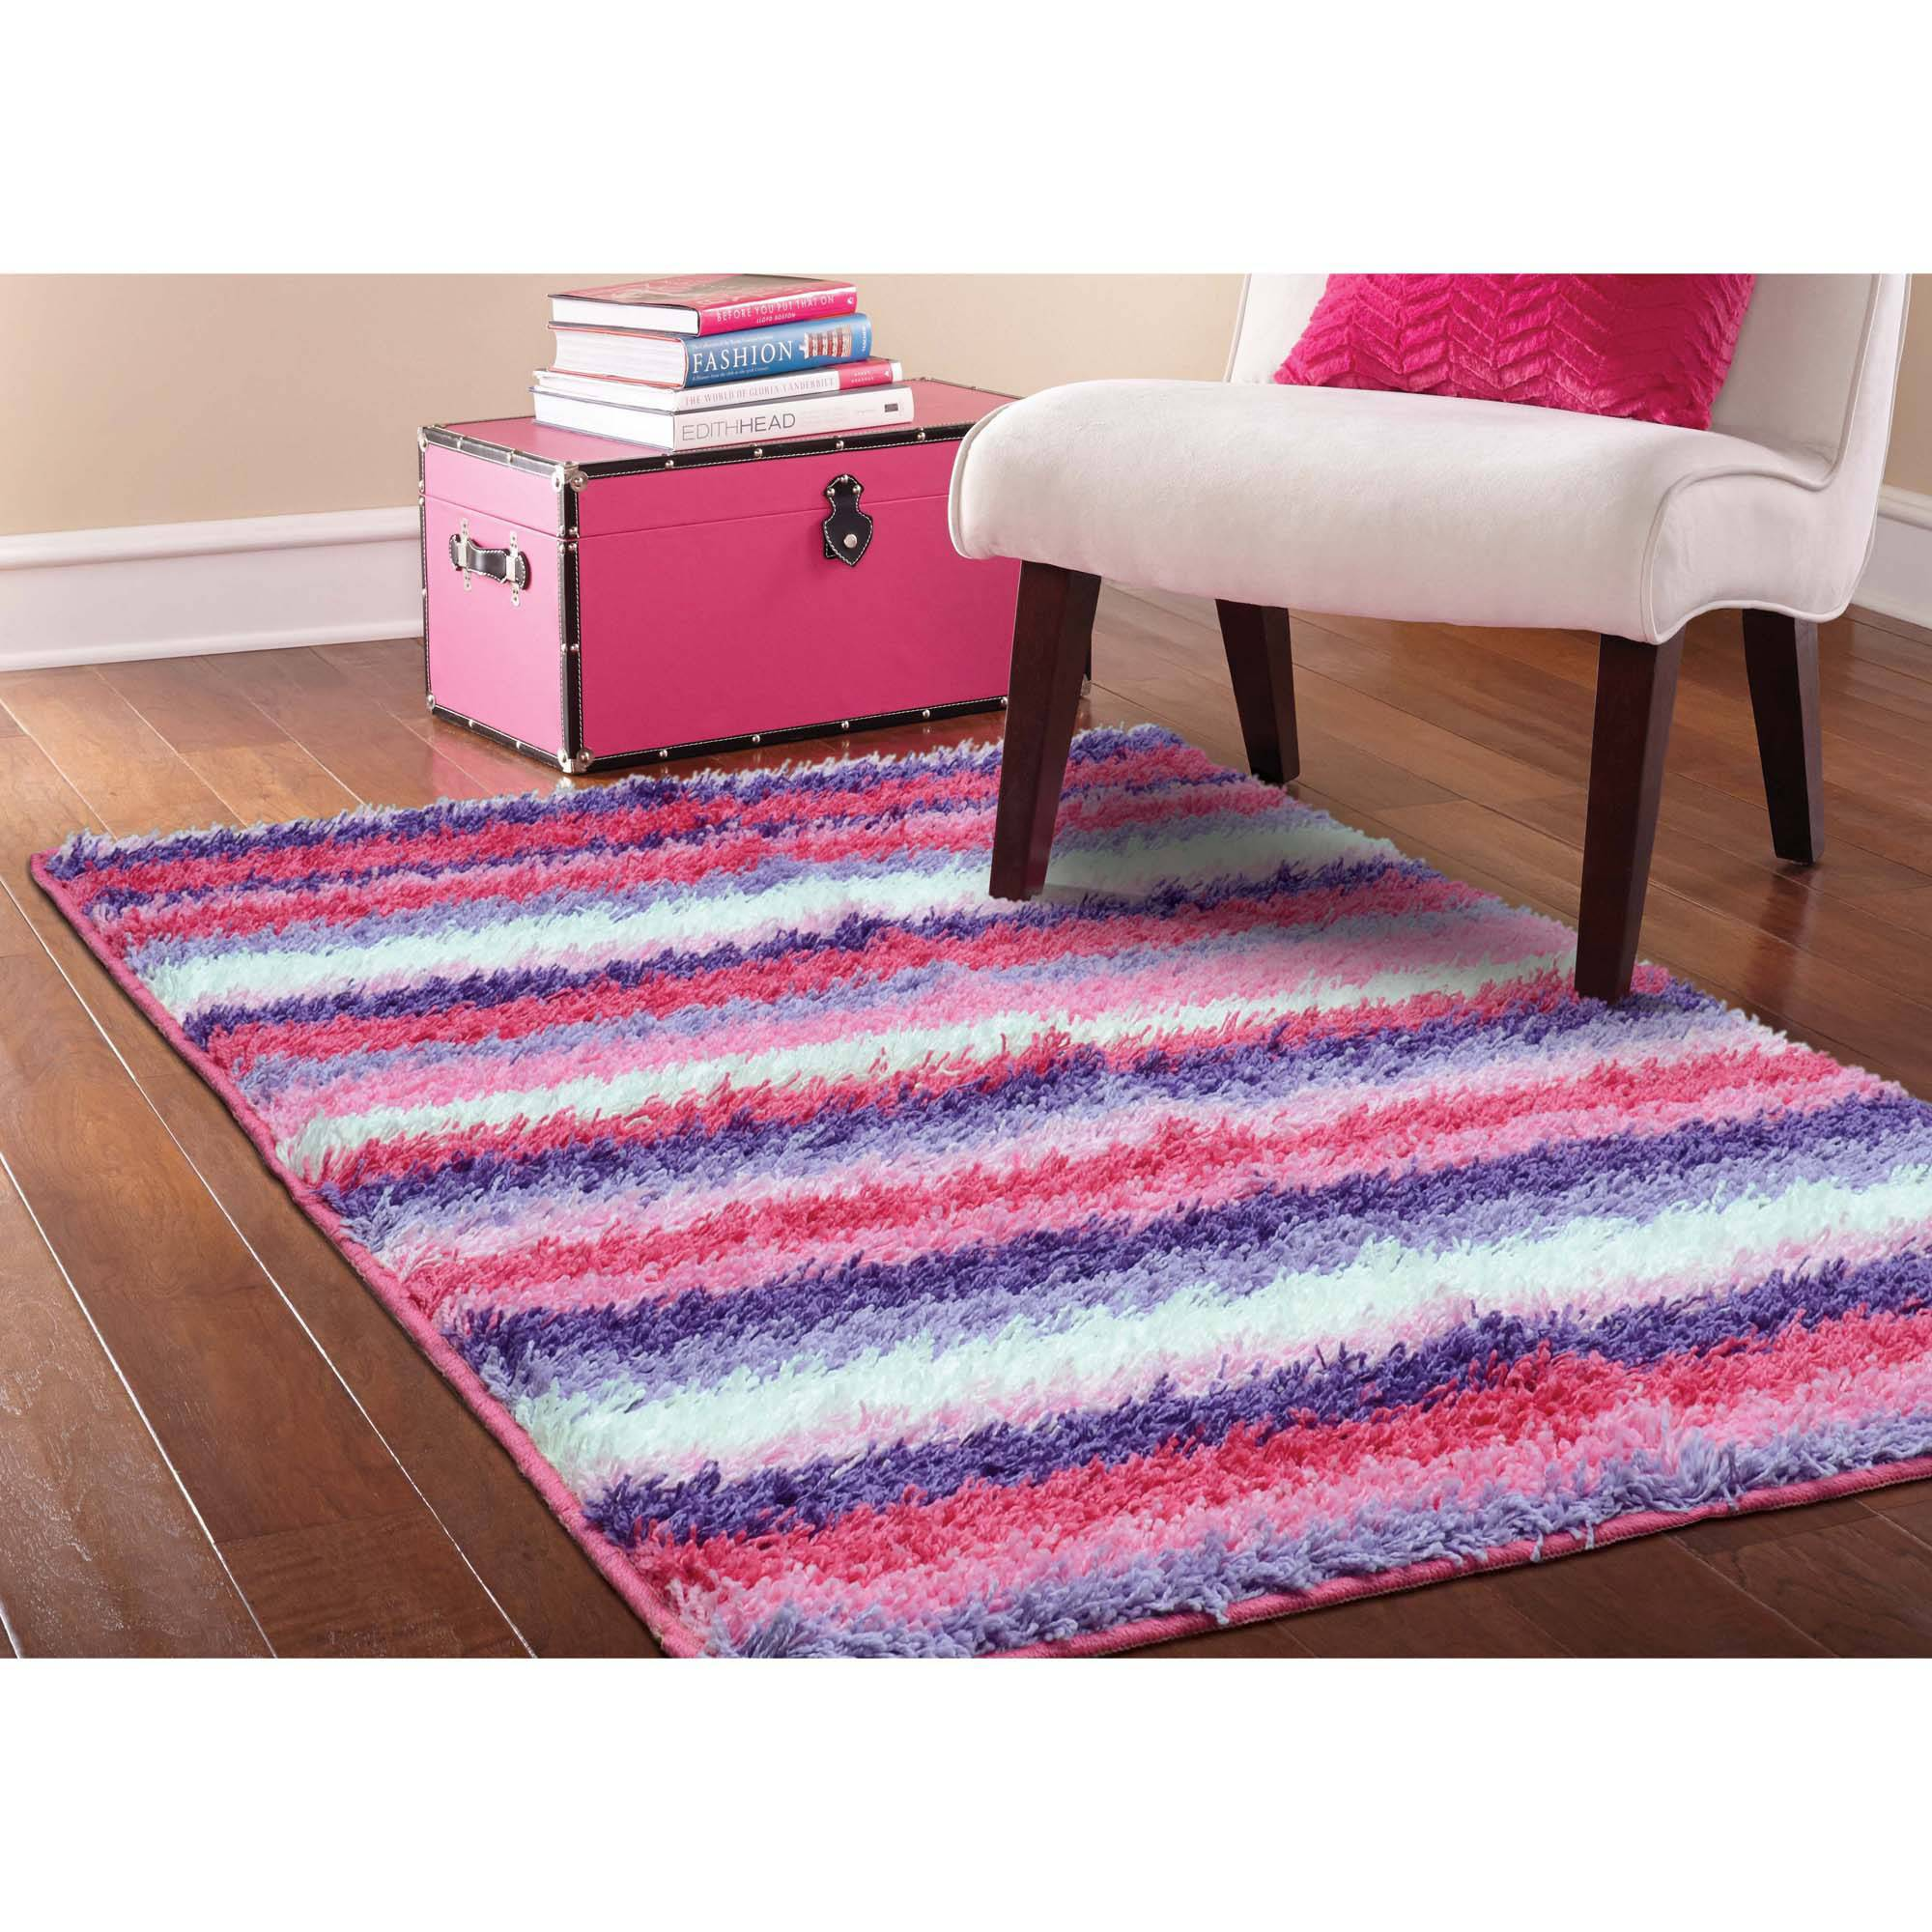 3 8 x2 6 your zone striped shag rug living room kids decor home 2 5 rh ebay com Pink Shaggy Rug Black Shaggy Rugs